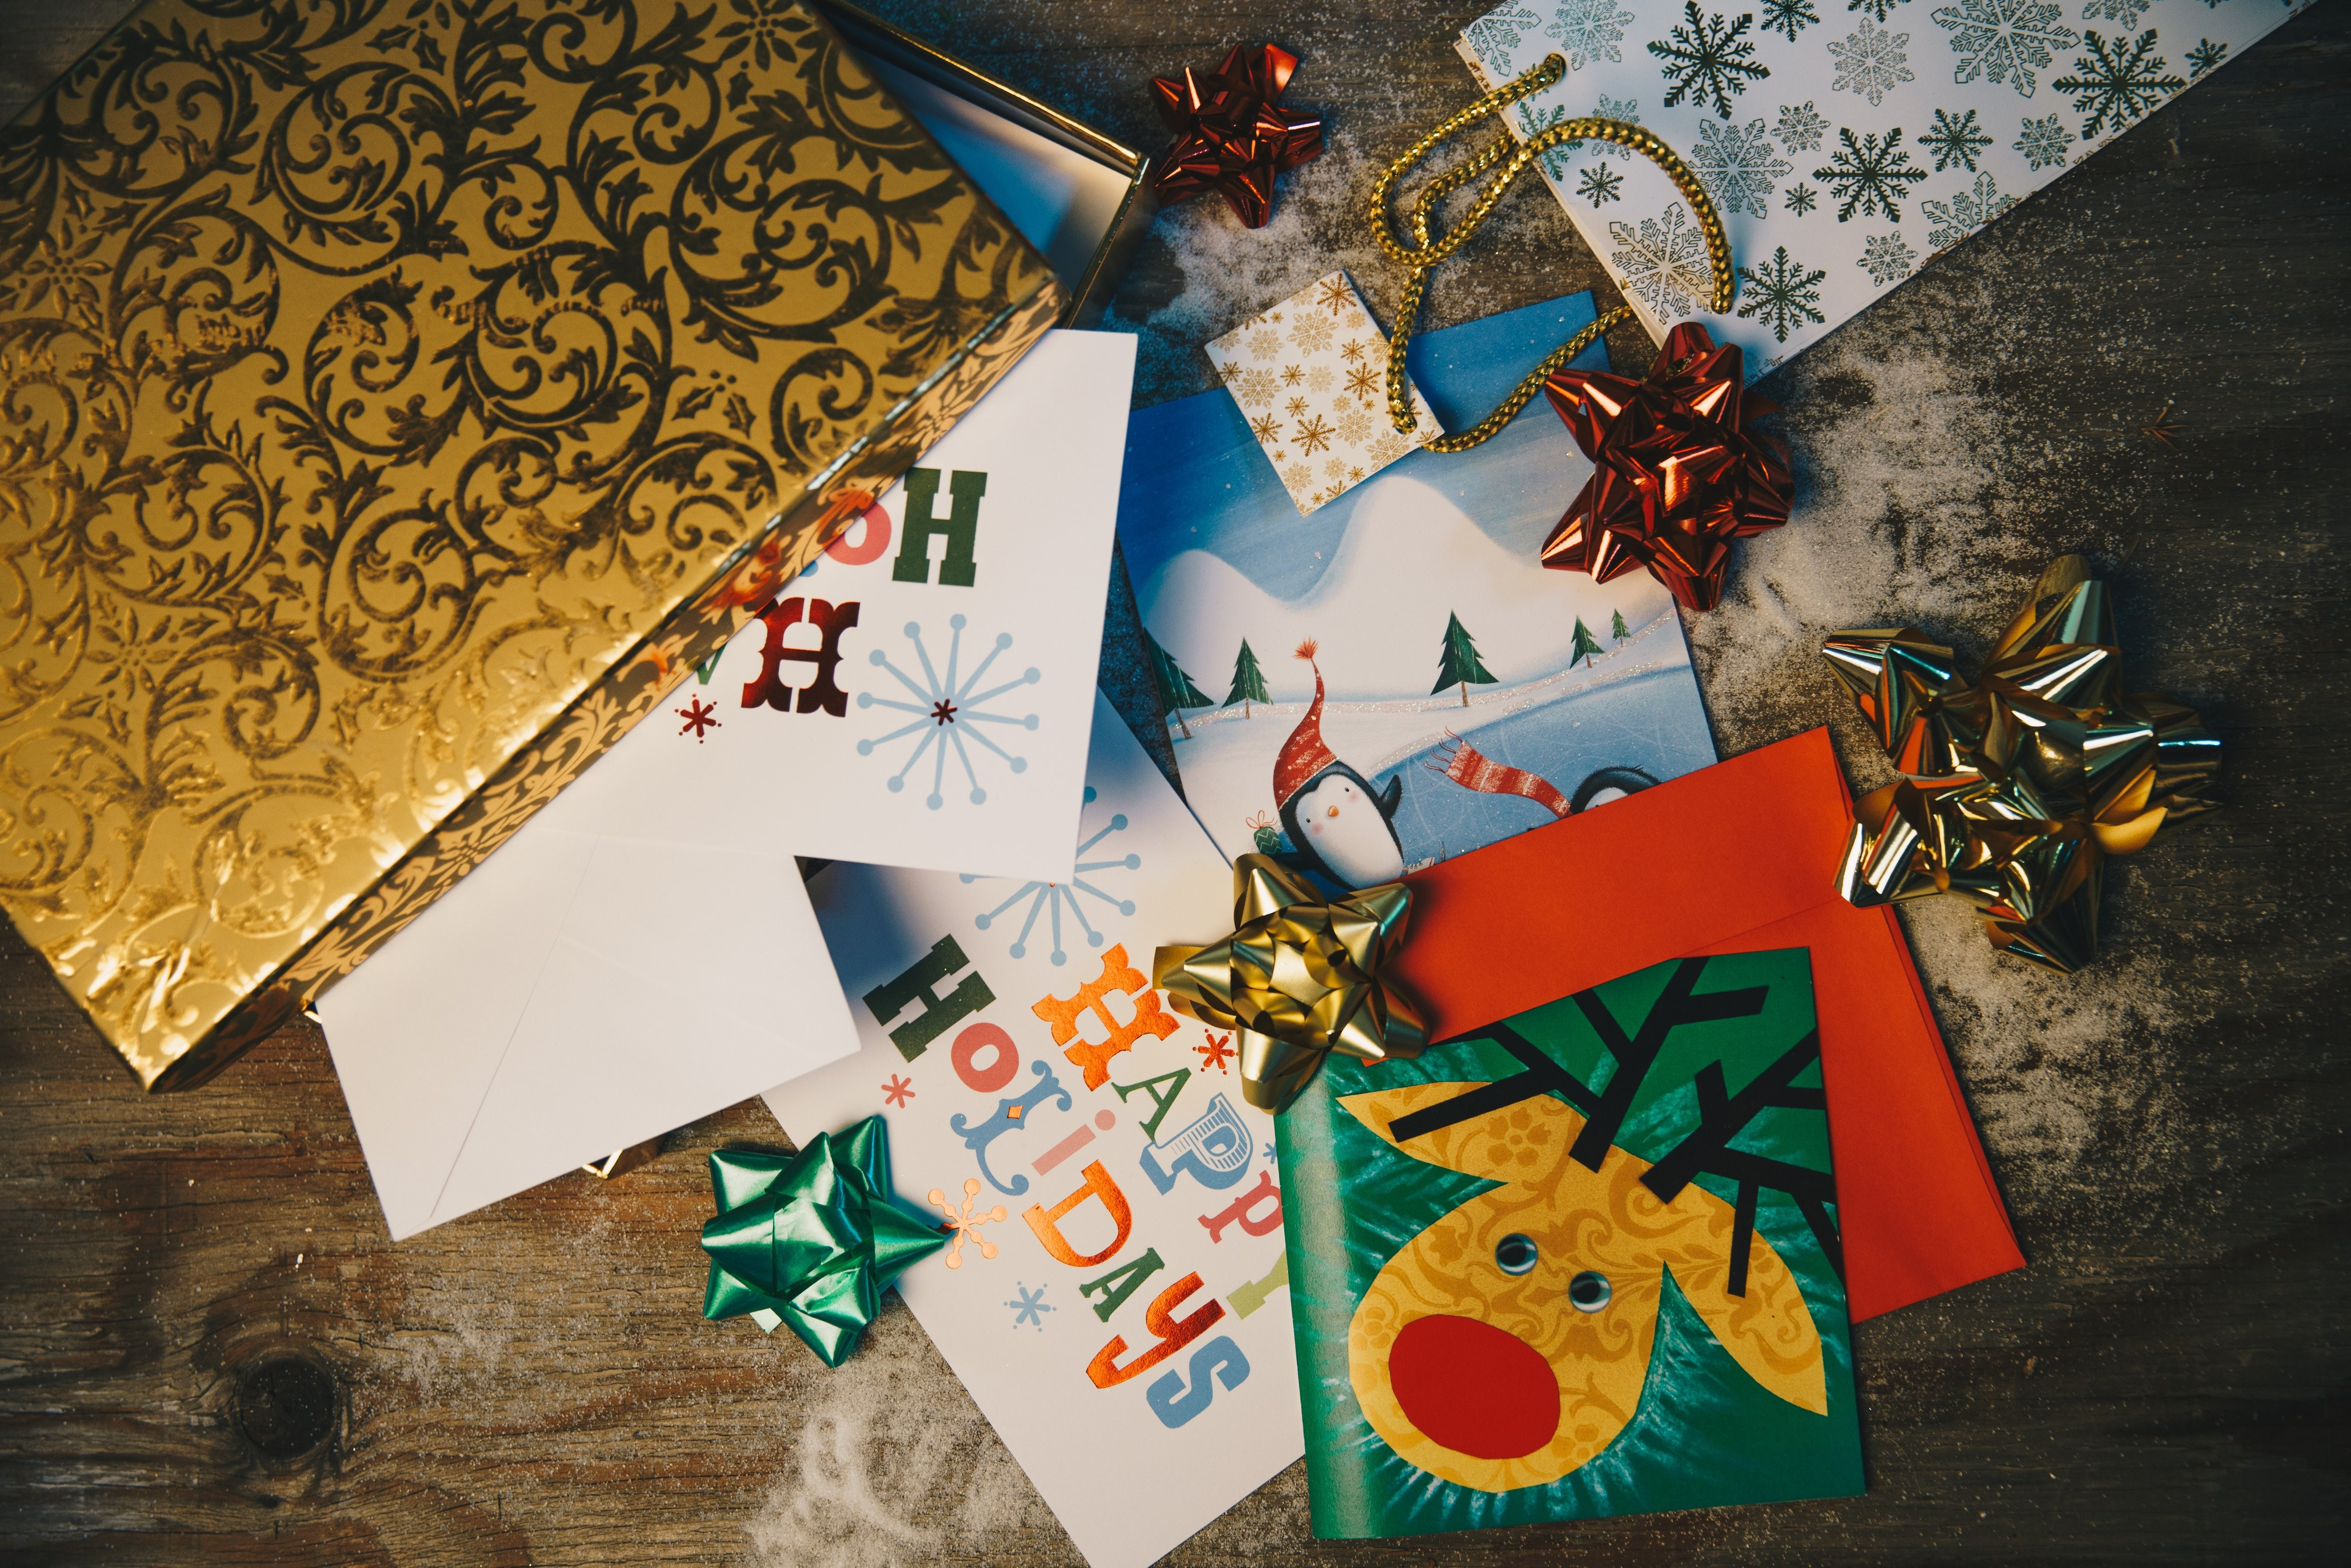 holiday-cards-gift-wrap_4460x4460.jpg